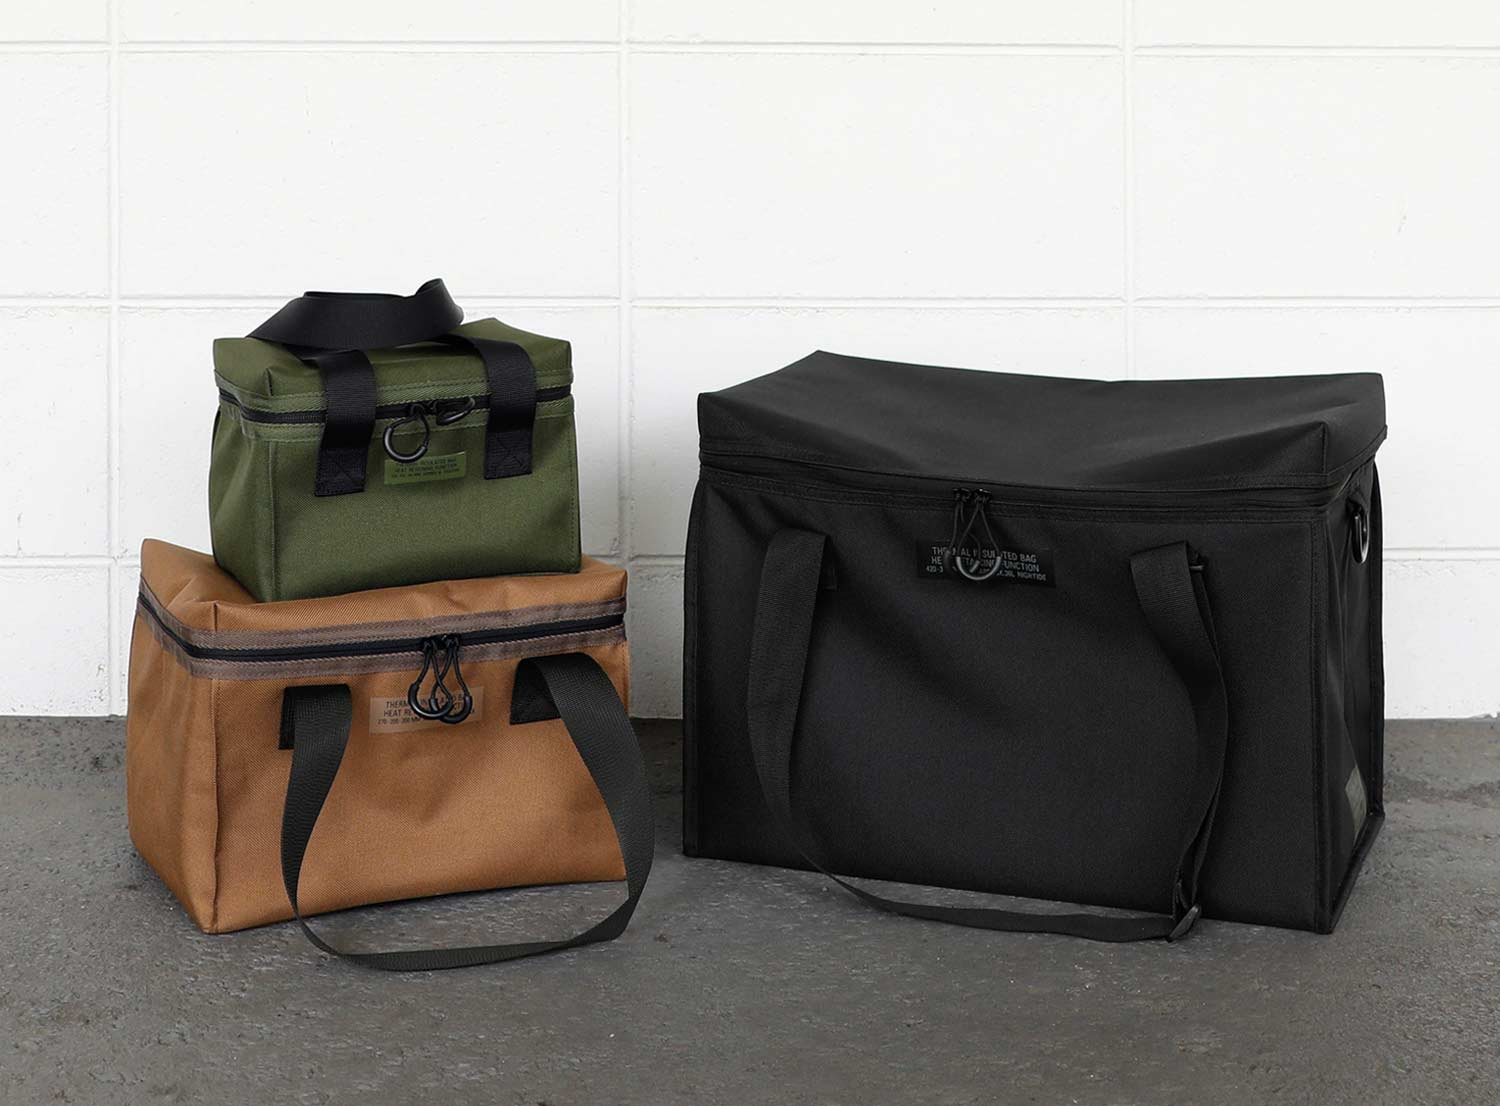 hightide cooler cargo bags in size small, medium and large in khaki, beige and black